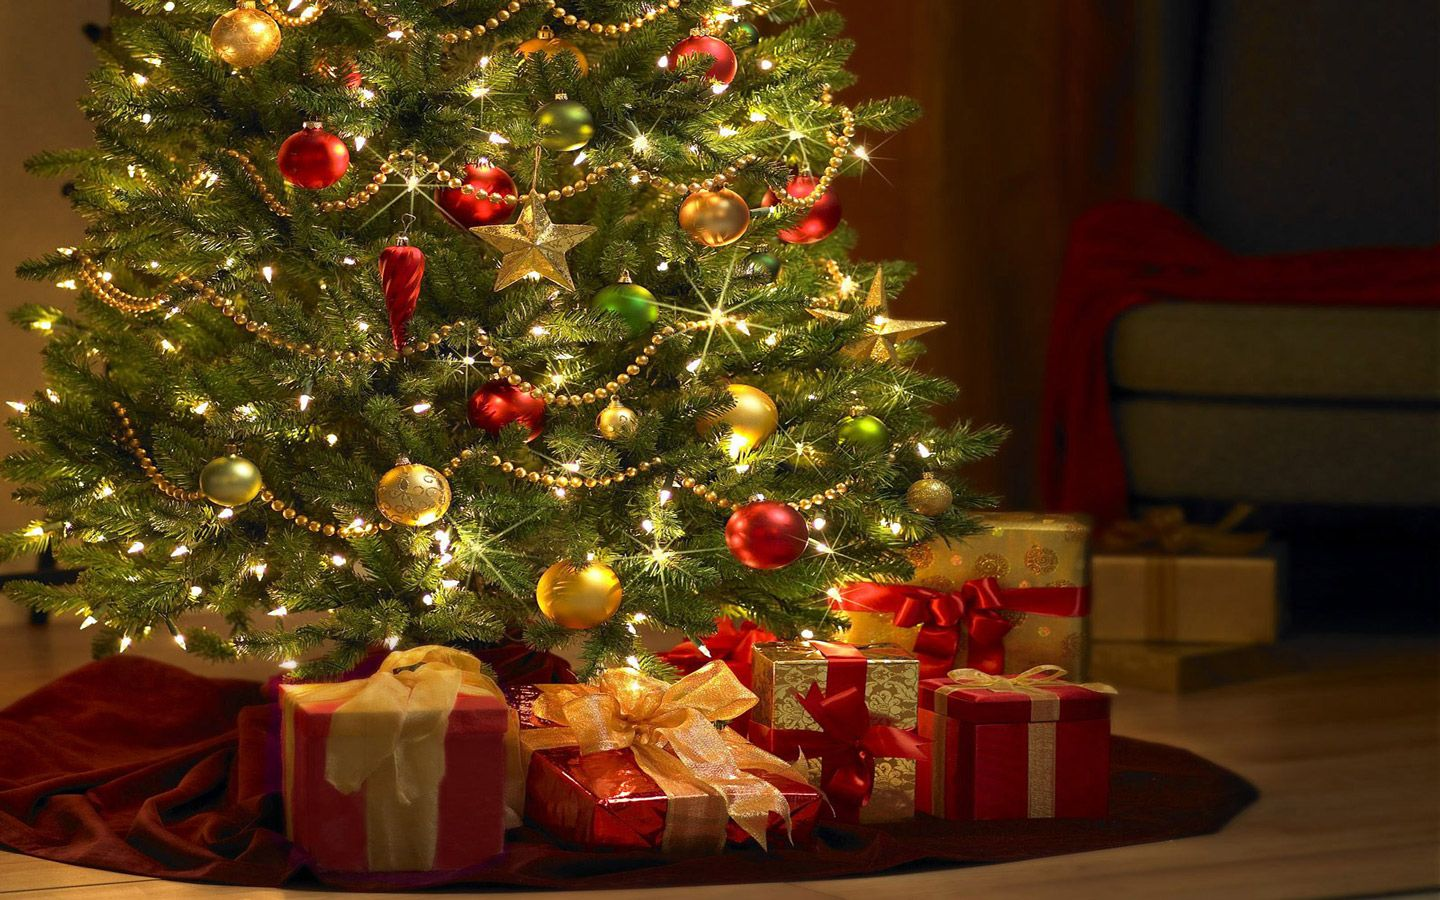 Beautiful Trees Wallpapers For Desktop Free Beautiful Christmas Tree With Gifts Comp Christmas Tree Wallpaper Christmas Tree Decorations Real Christmas Tree